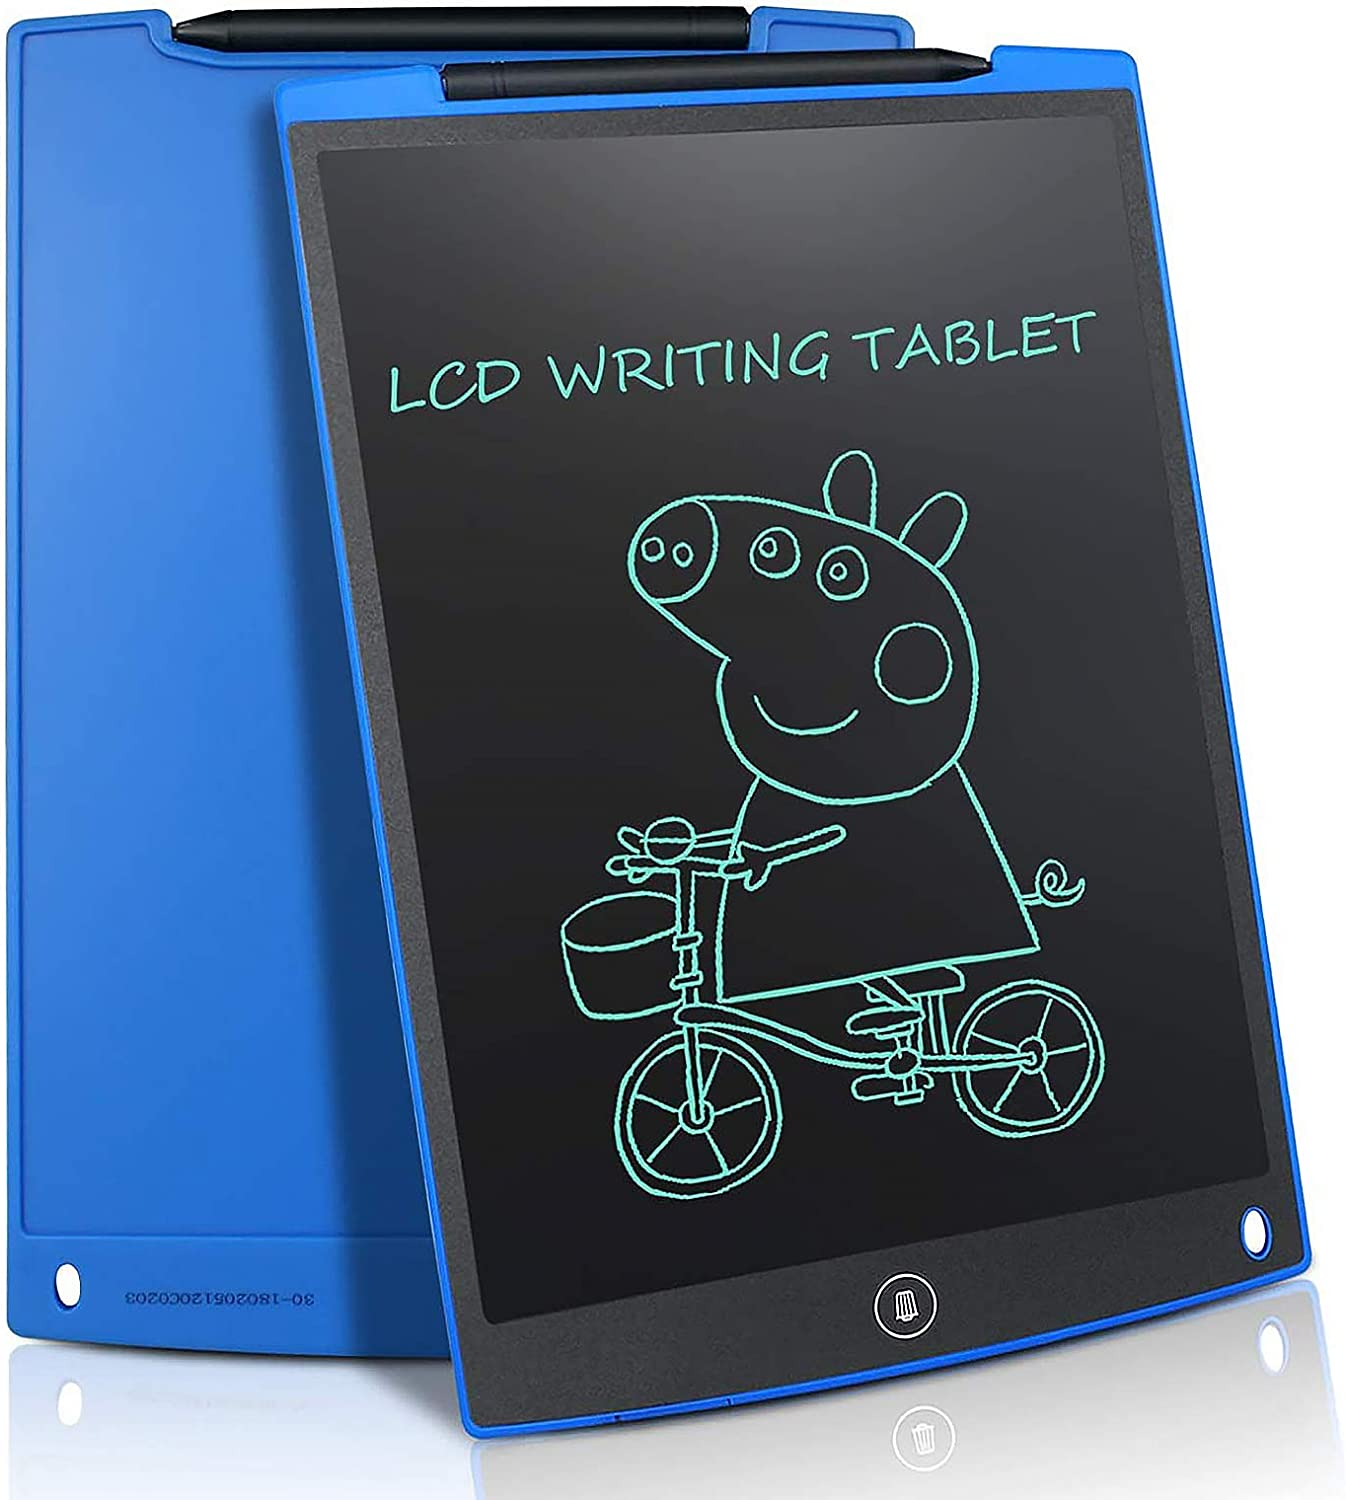 Digital Handwriting Colorful Screen Drawing Tablet Thick Lines Intelligent Paper Doodle Board for Kids-Blue JRMU 12-inch LCD Portable Electronic Writing Tablet